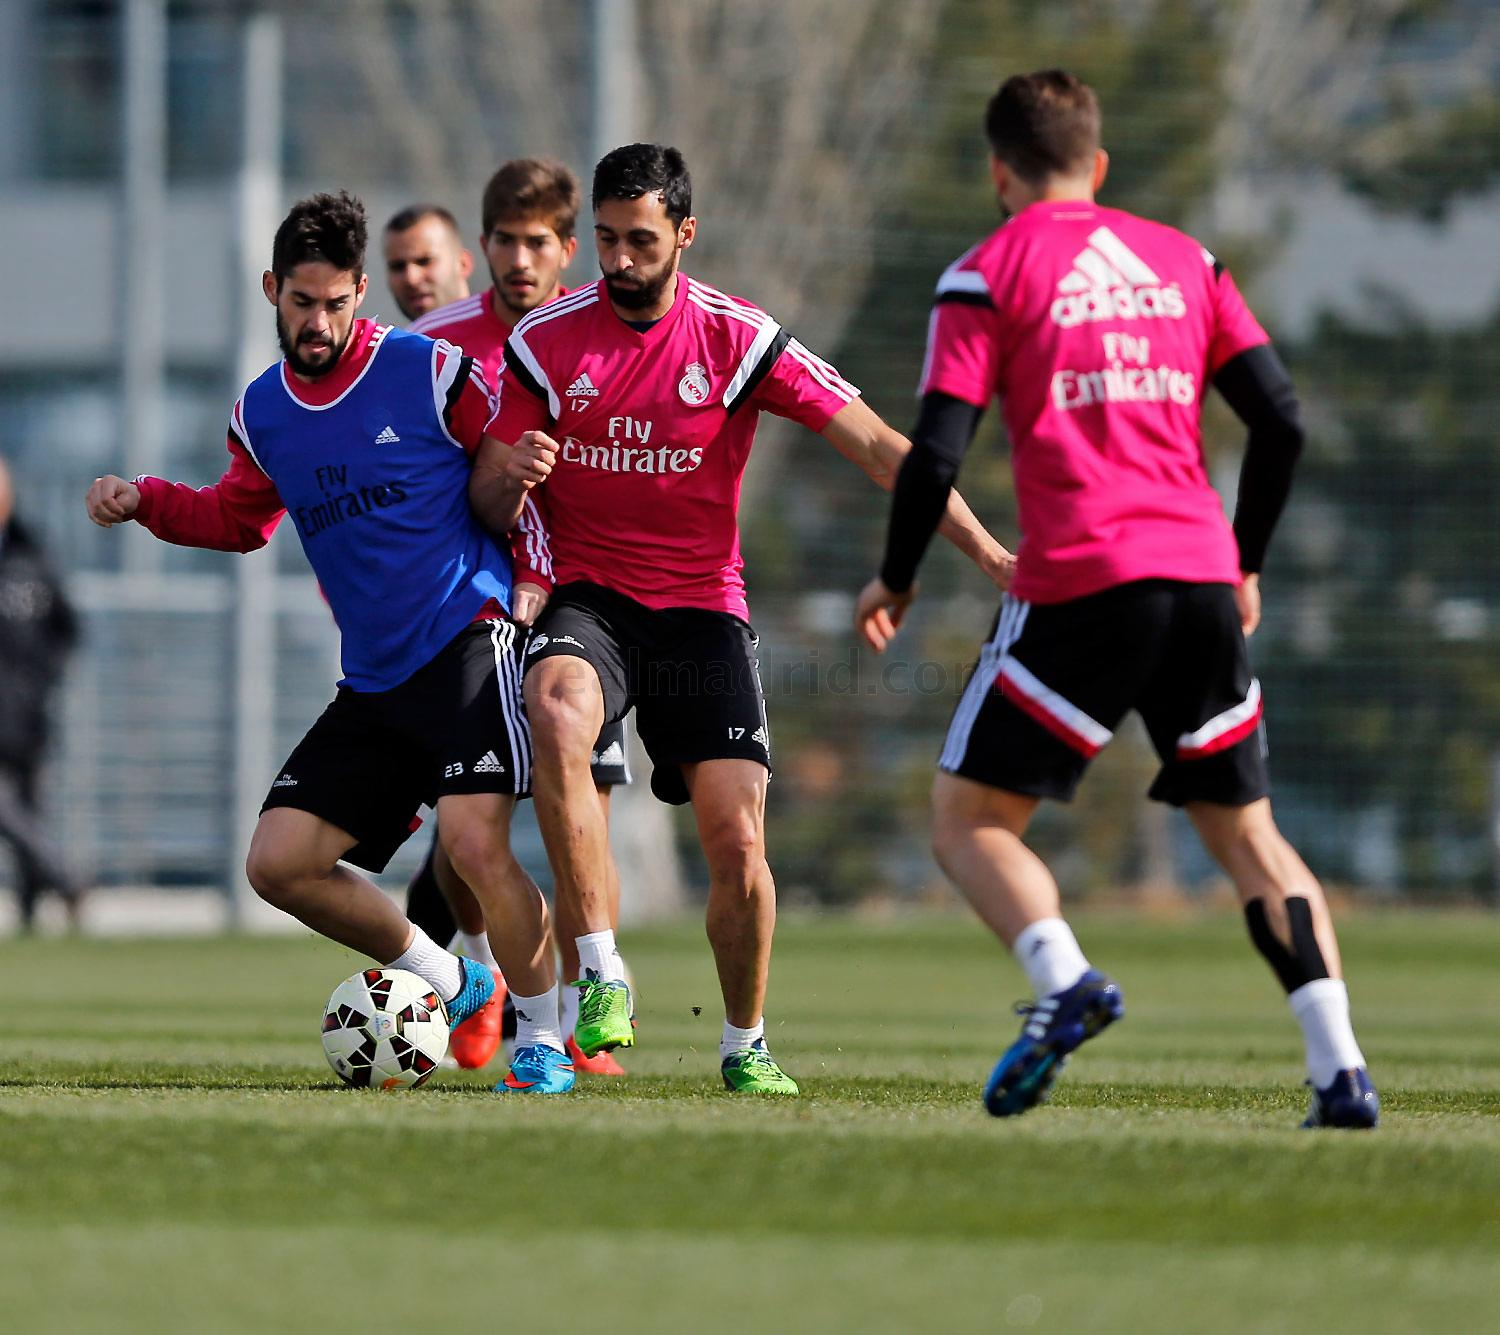 Real Madrid - Entrenamiento del Real Madrid - 28-02-2015